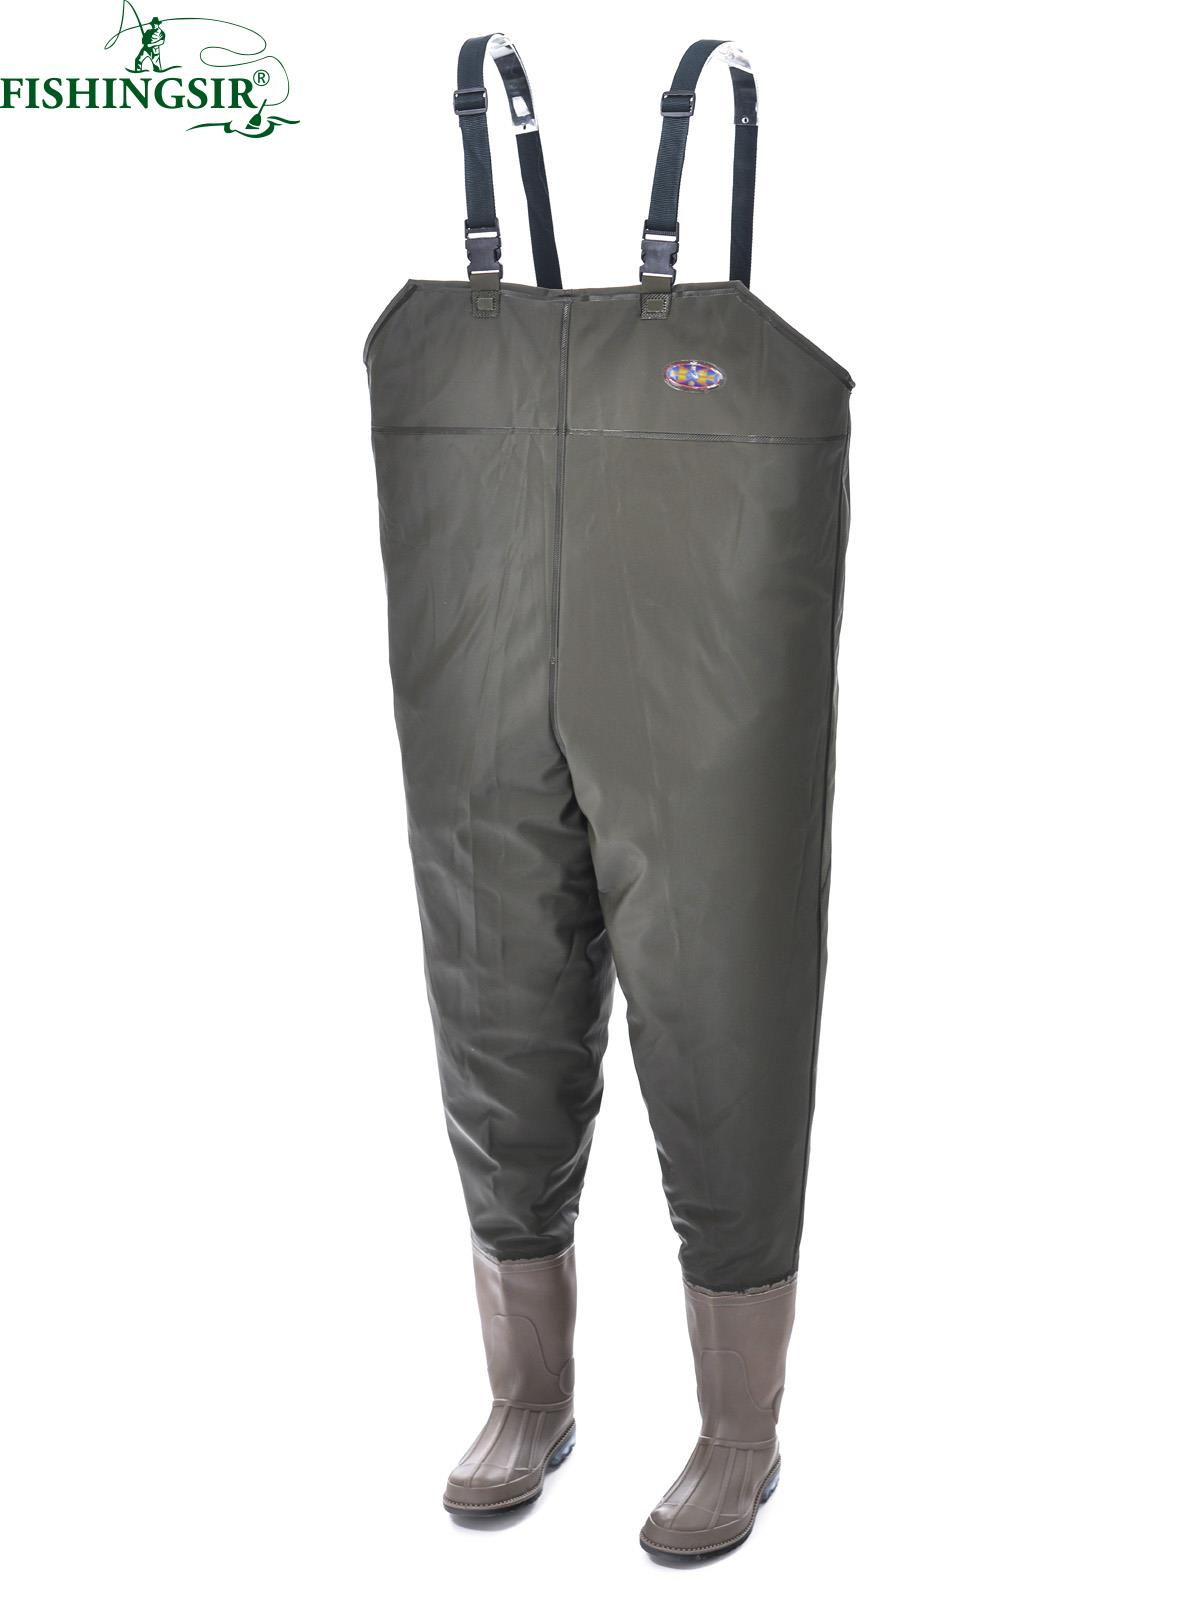 New Rubber Boot Foot Fly Fishing Waders Chest Wader Waterproof Hunting Ice Fishing Overalls Winter Working Clothes , Size 7-11.5